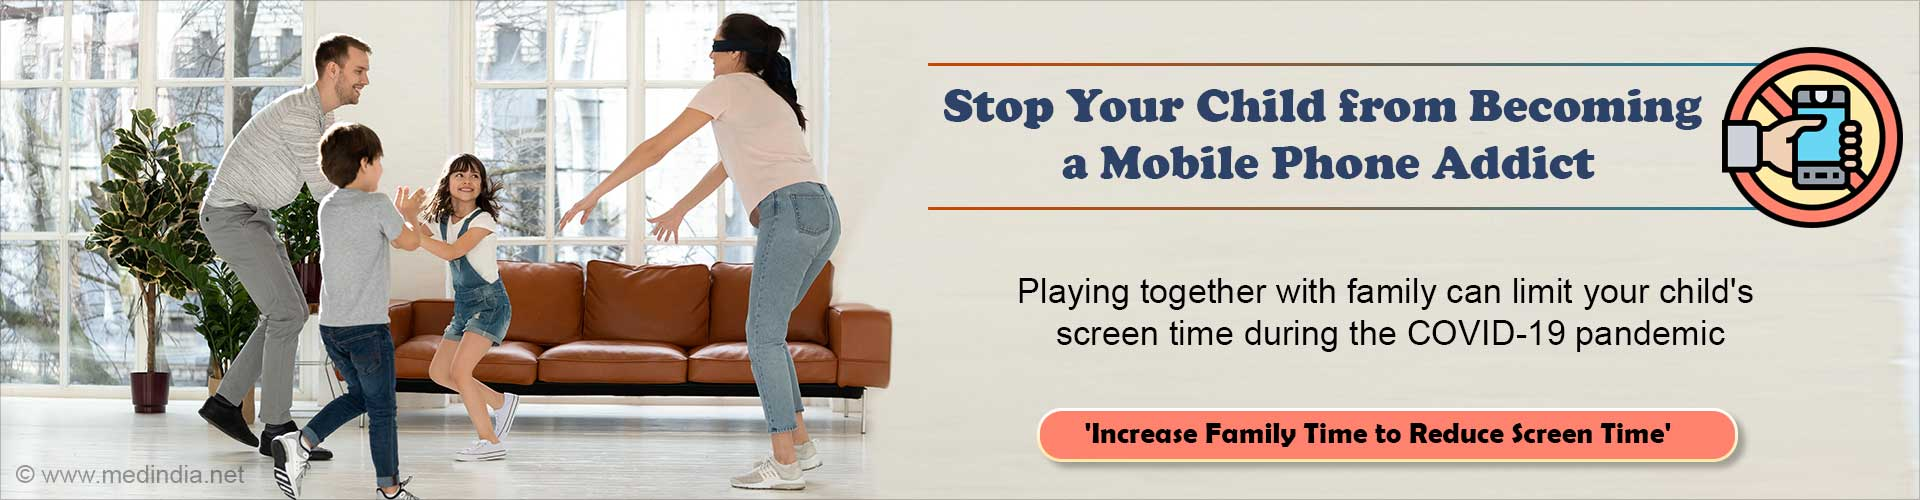 COVID-19 Lockdown: Increase Family Time to Limit Your Child's Screen Time